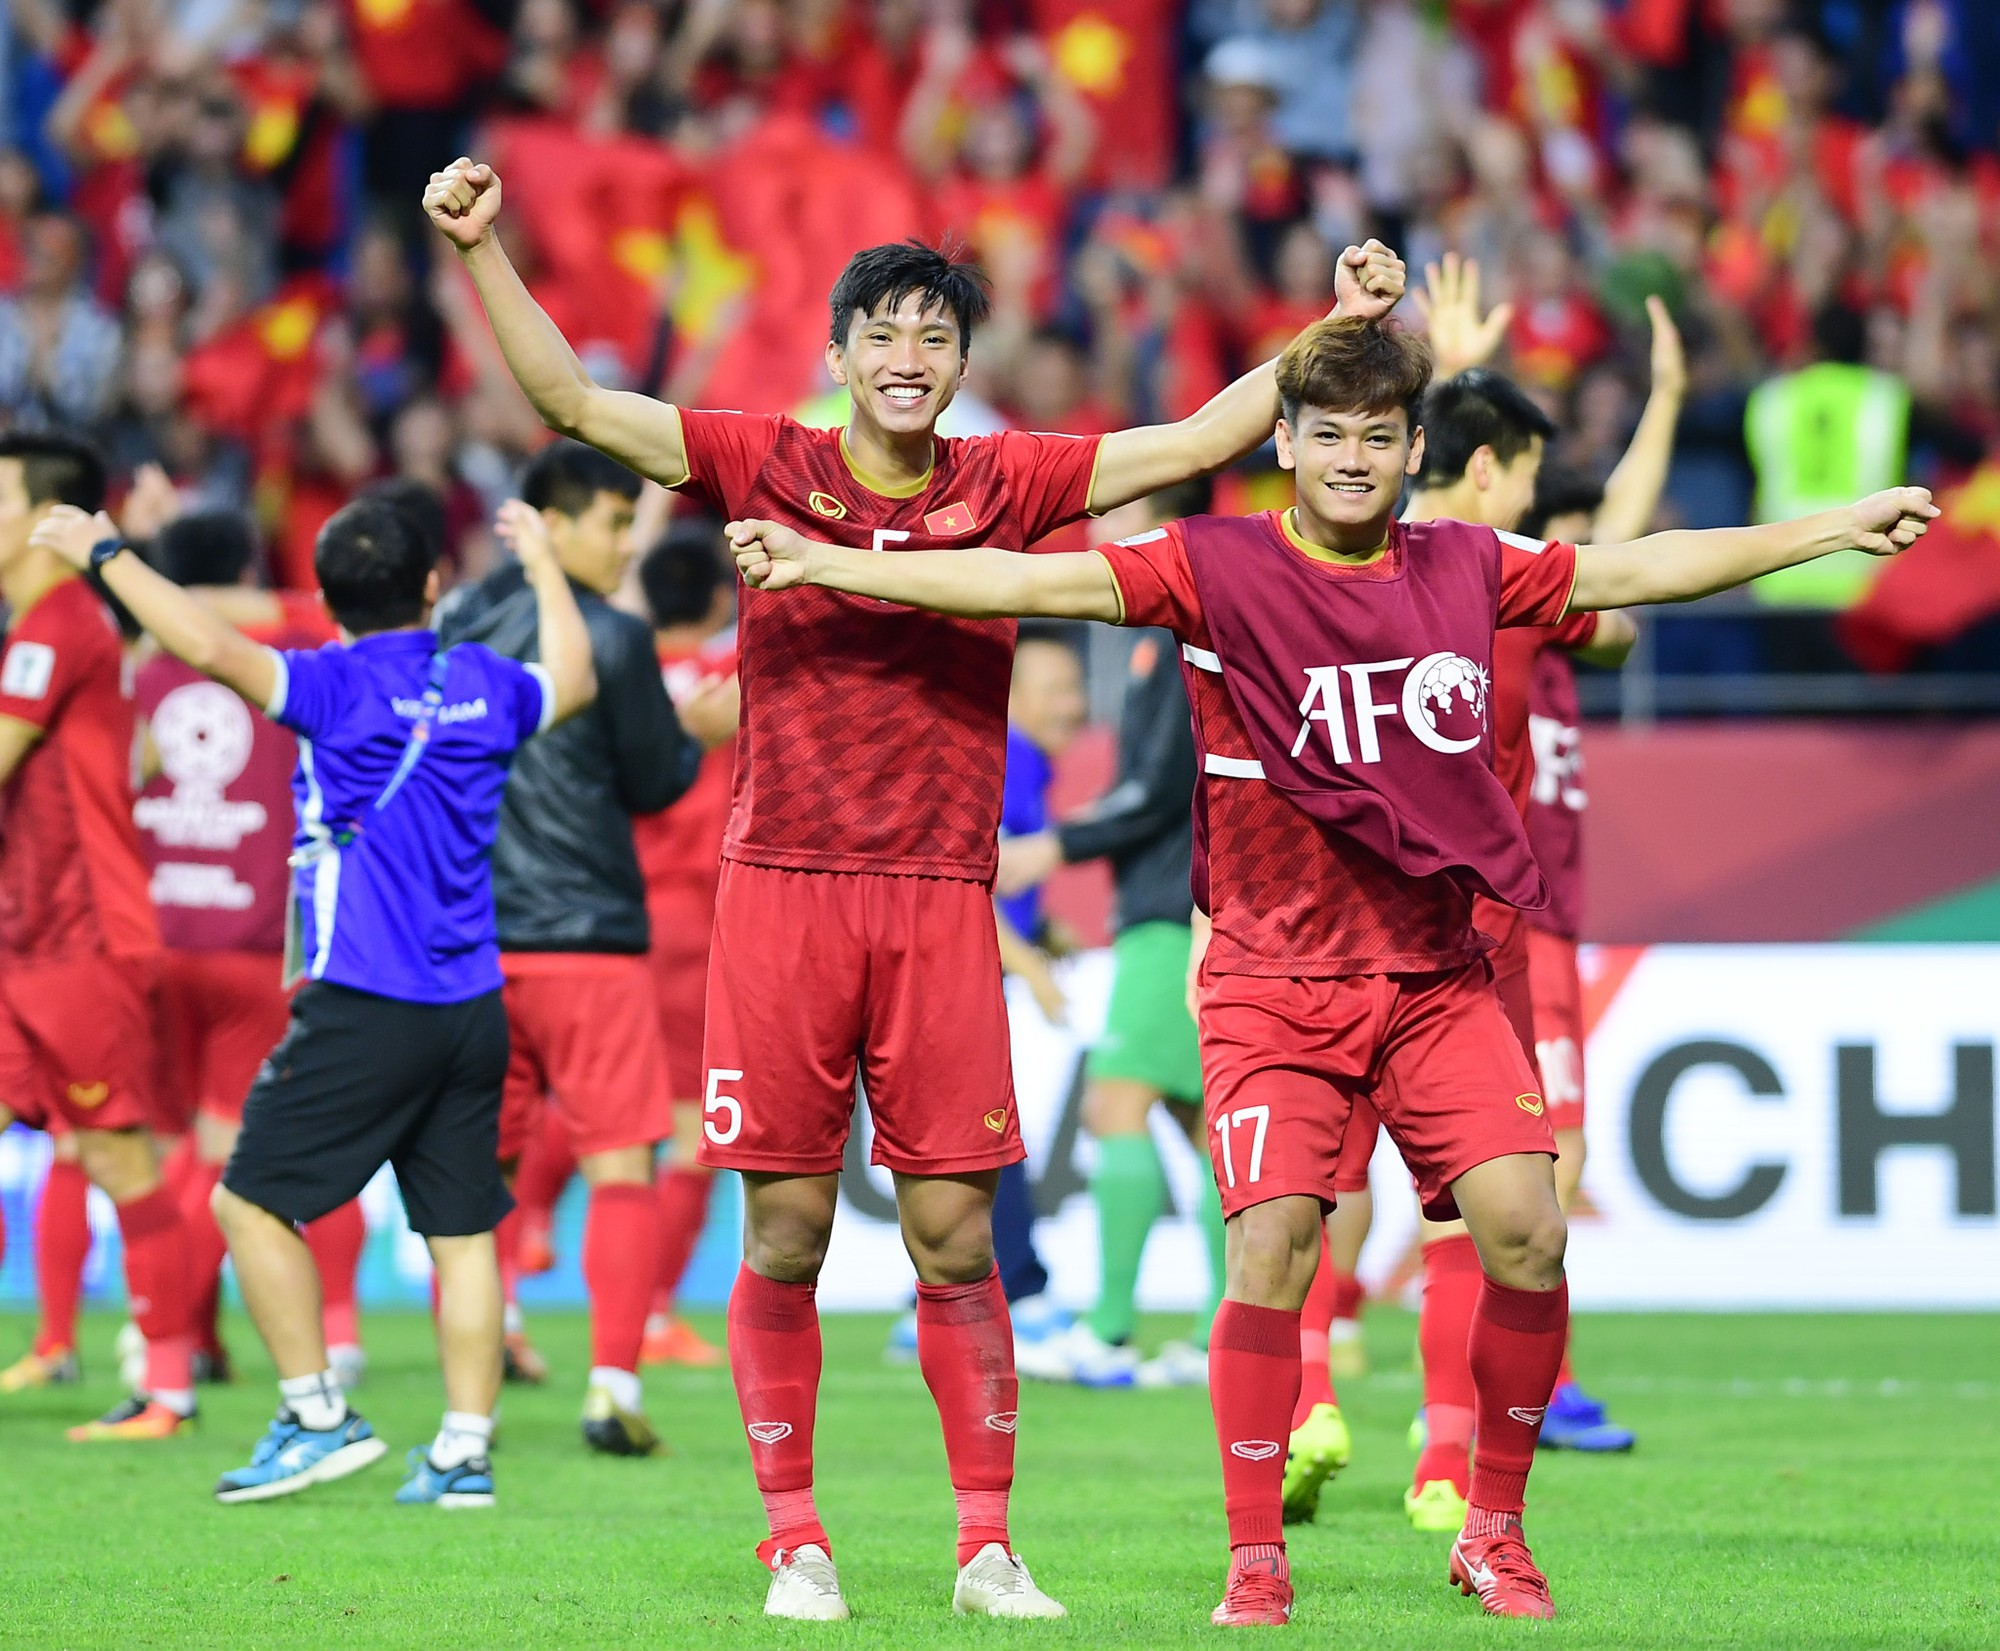 dtvntapluyenasiancup201919111415480121906583203197862f7b5d7ef0cp.jpg